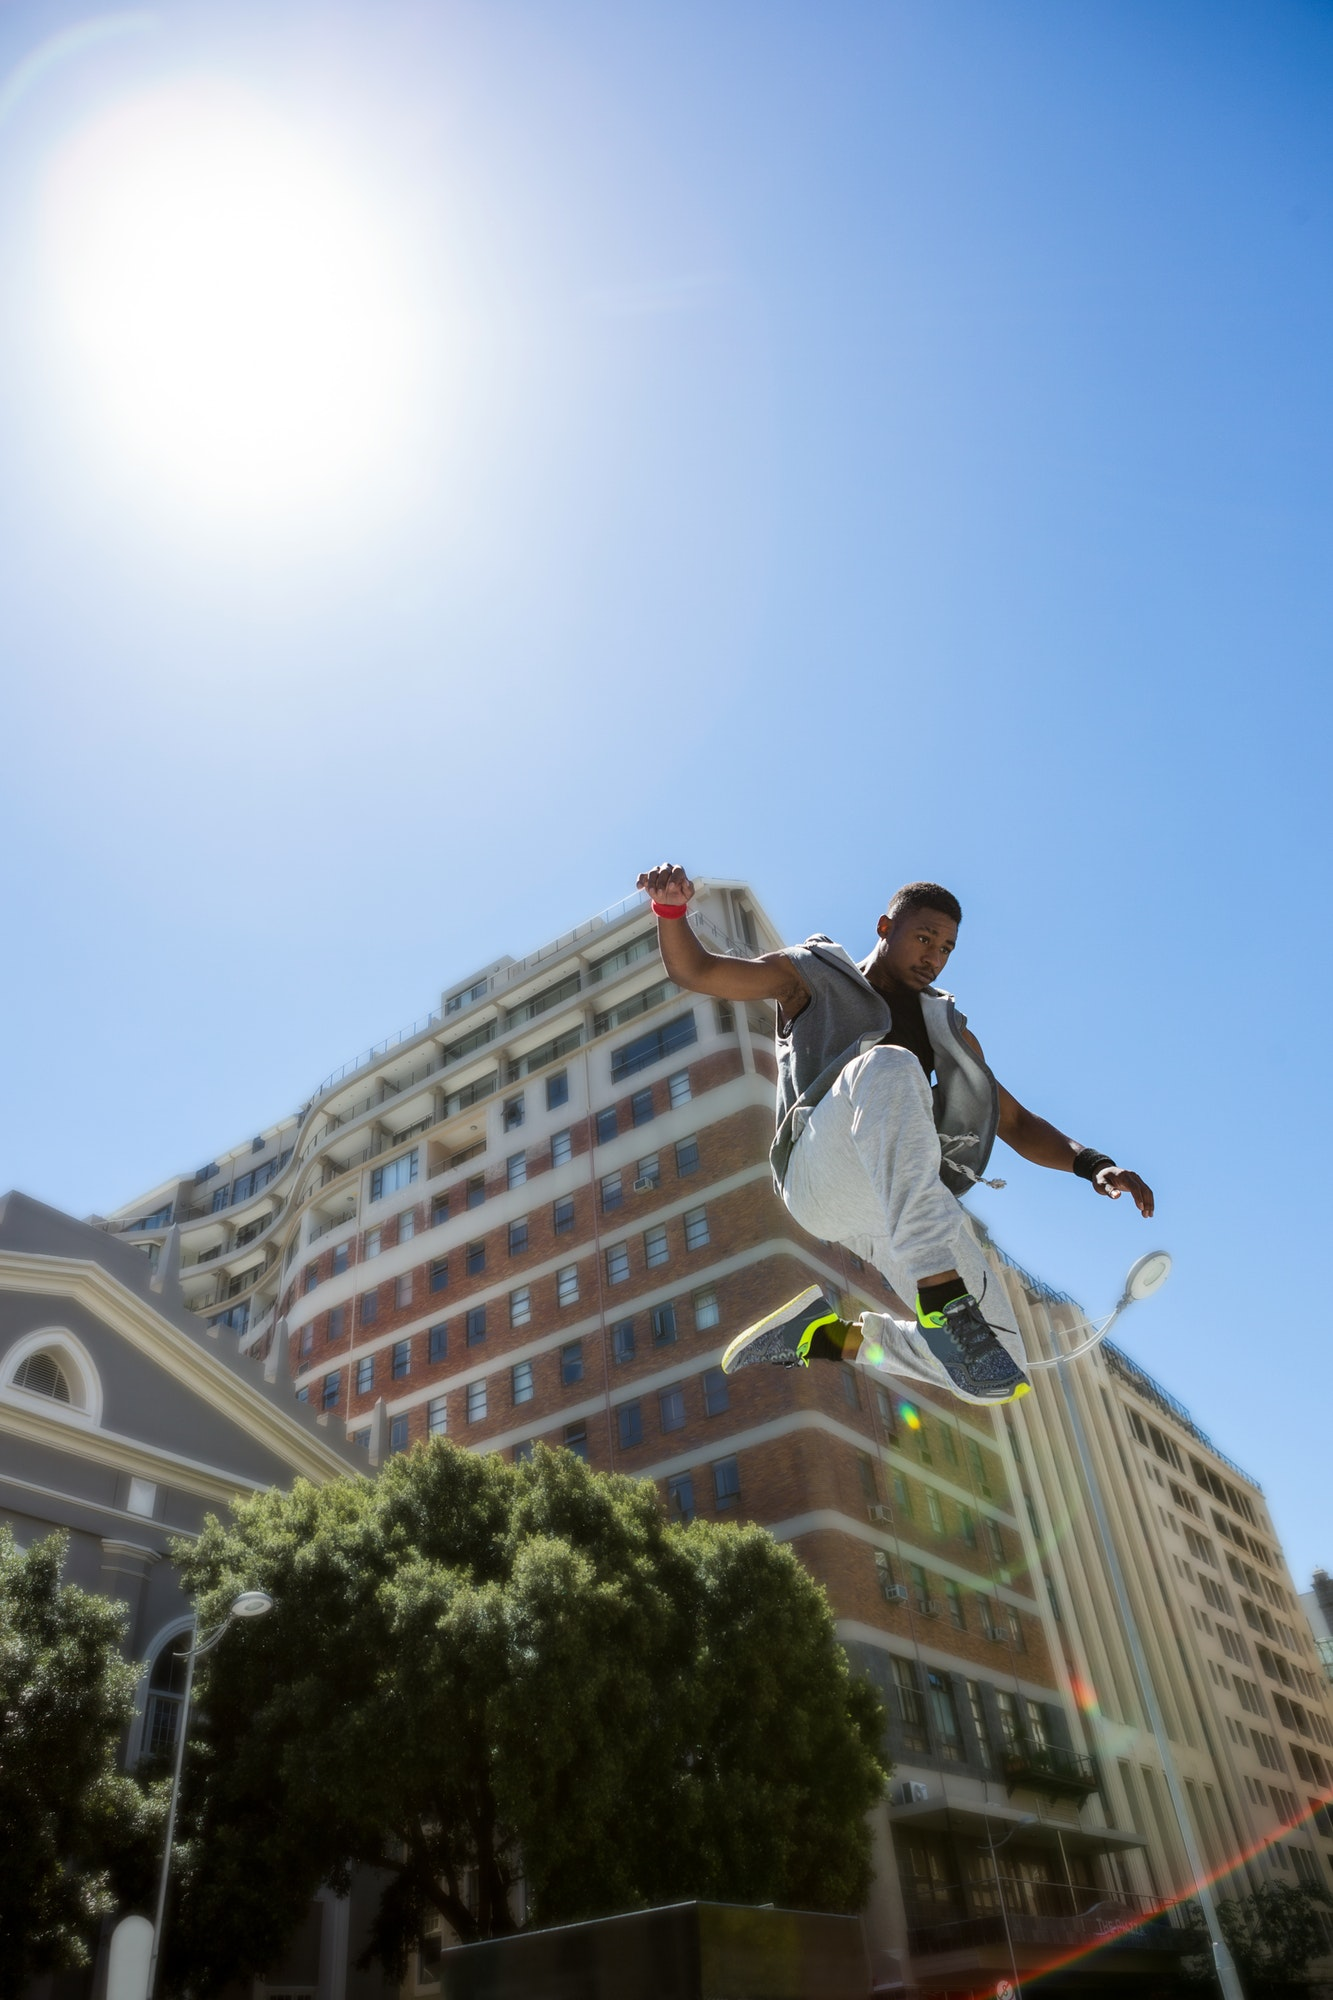 Athletic man doing parkour in the city on a sunny day